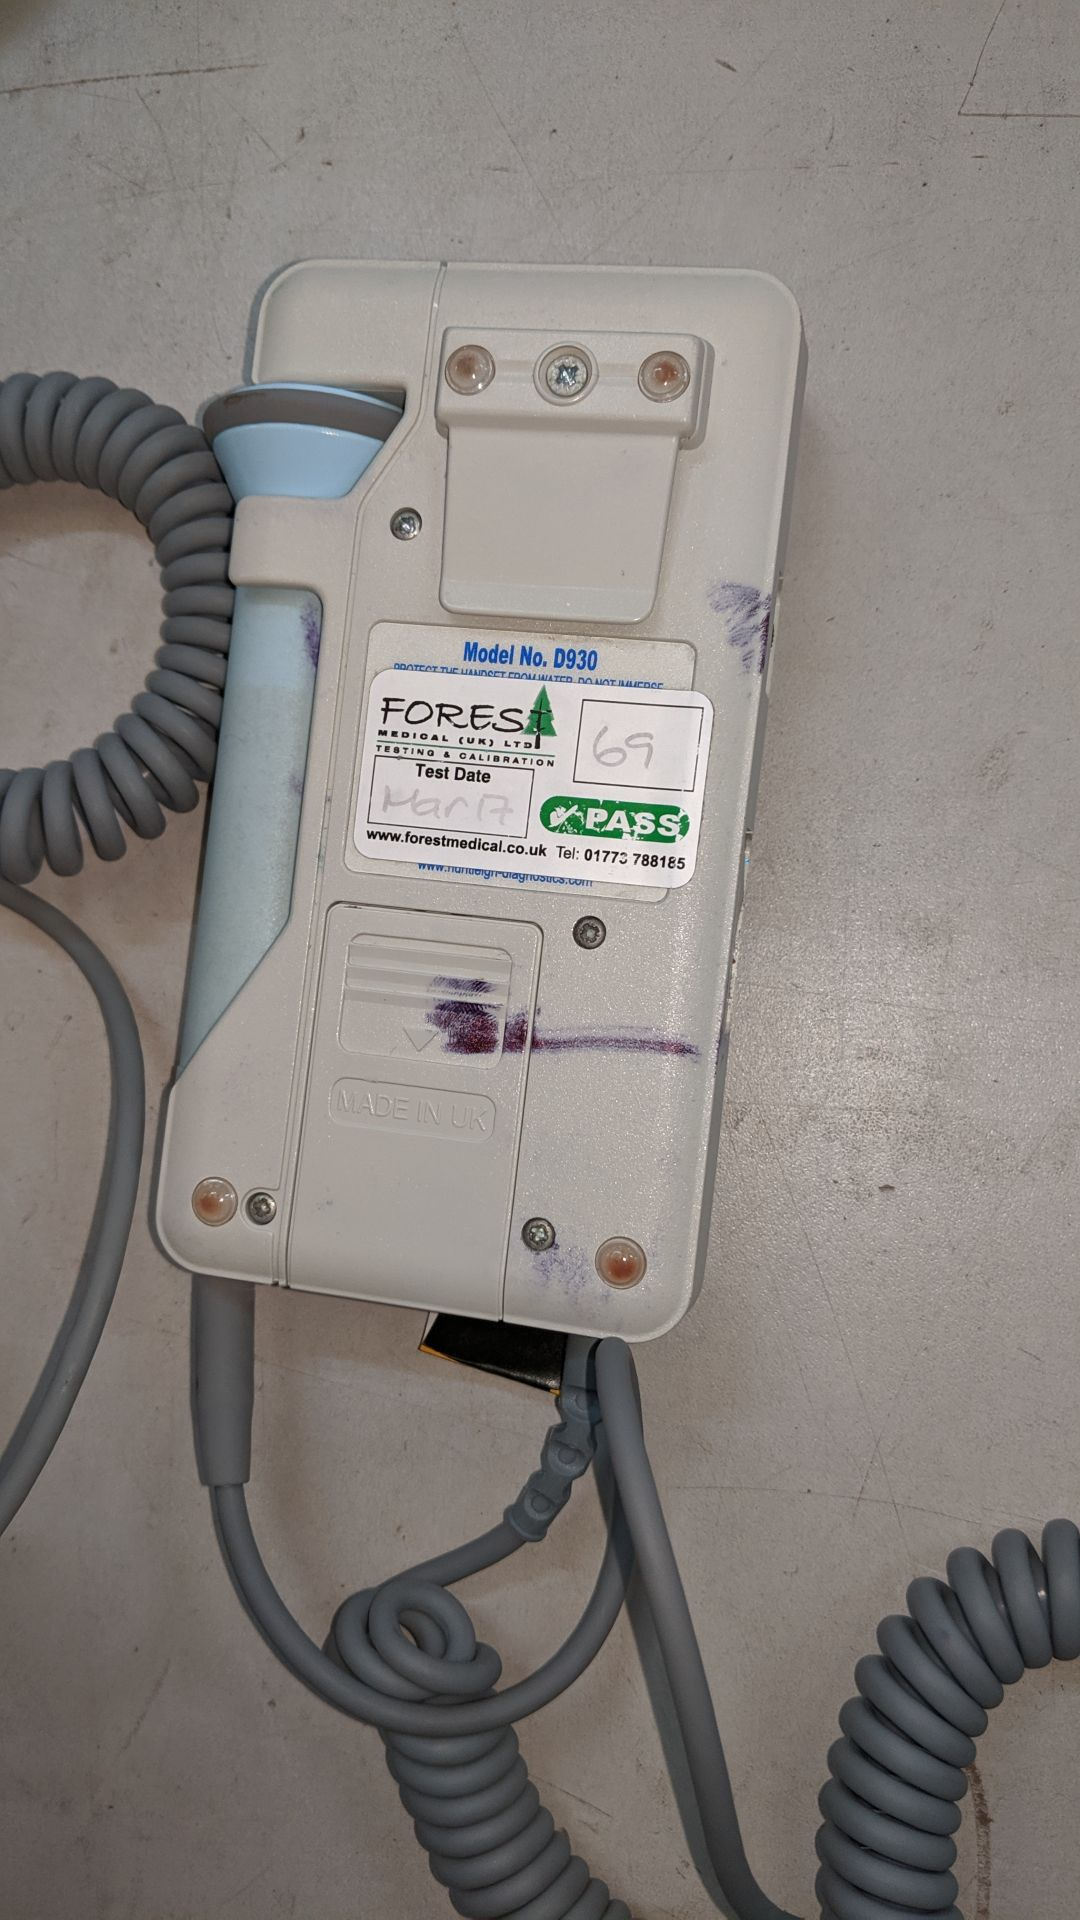 Lot 722 - Huntleigh Sonicaid D930 Fetal Doppler tester. This is one of a large number of lots used/owned by